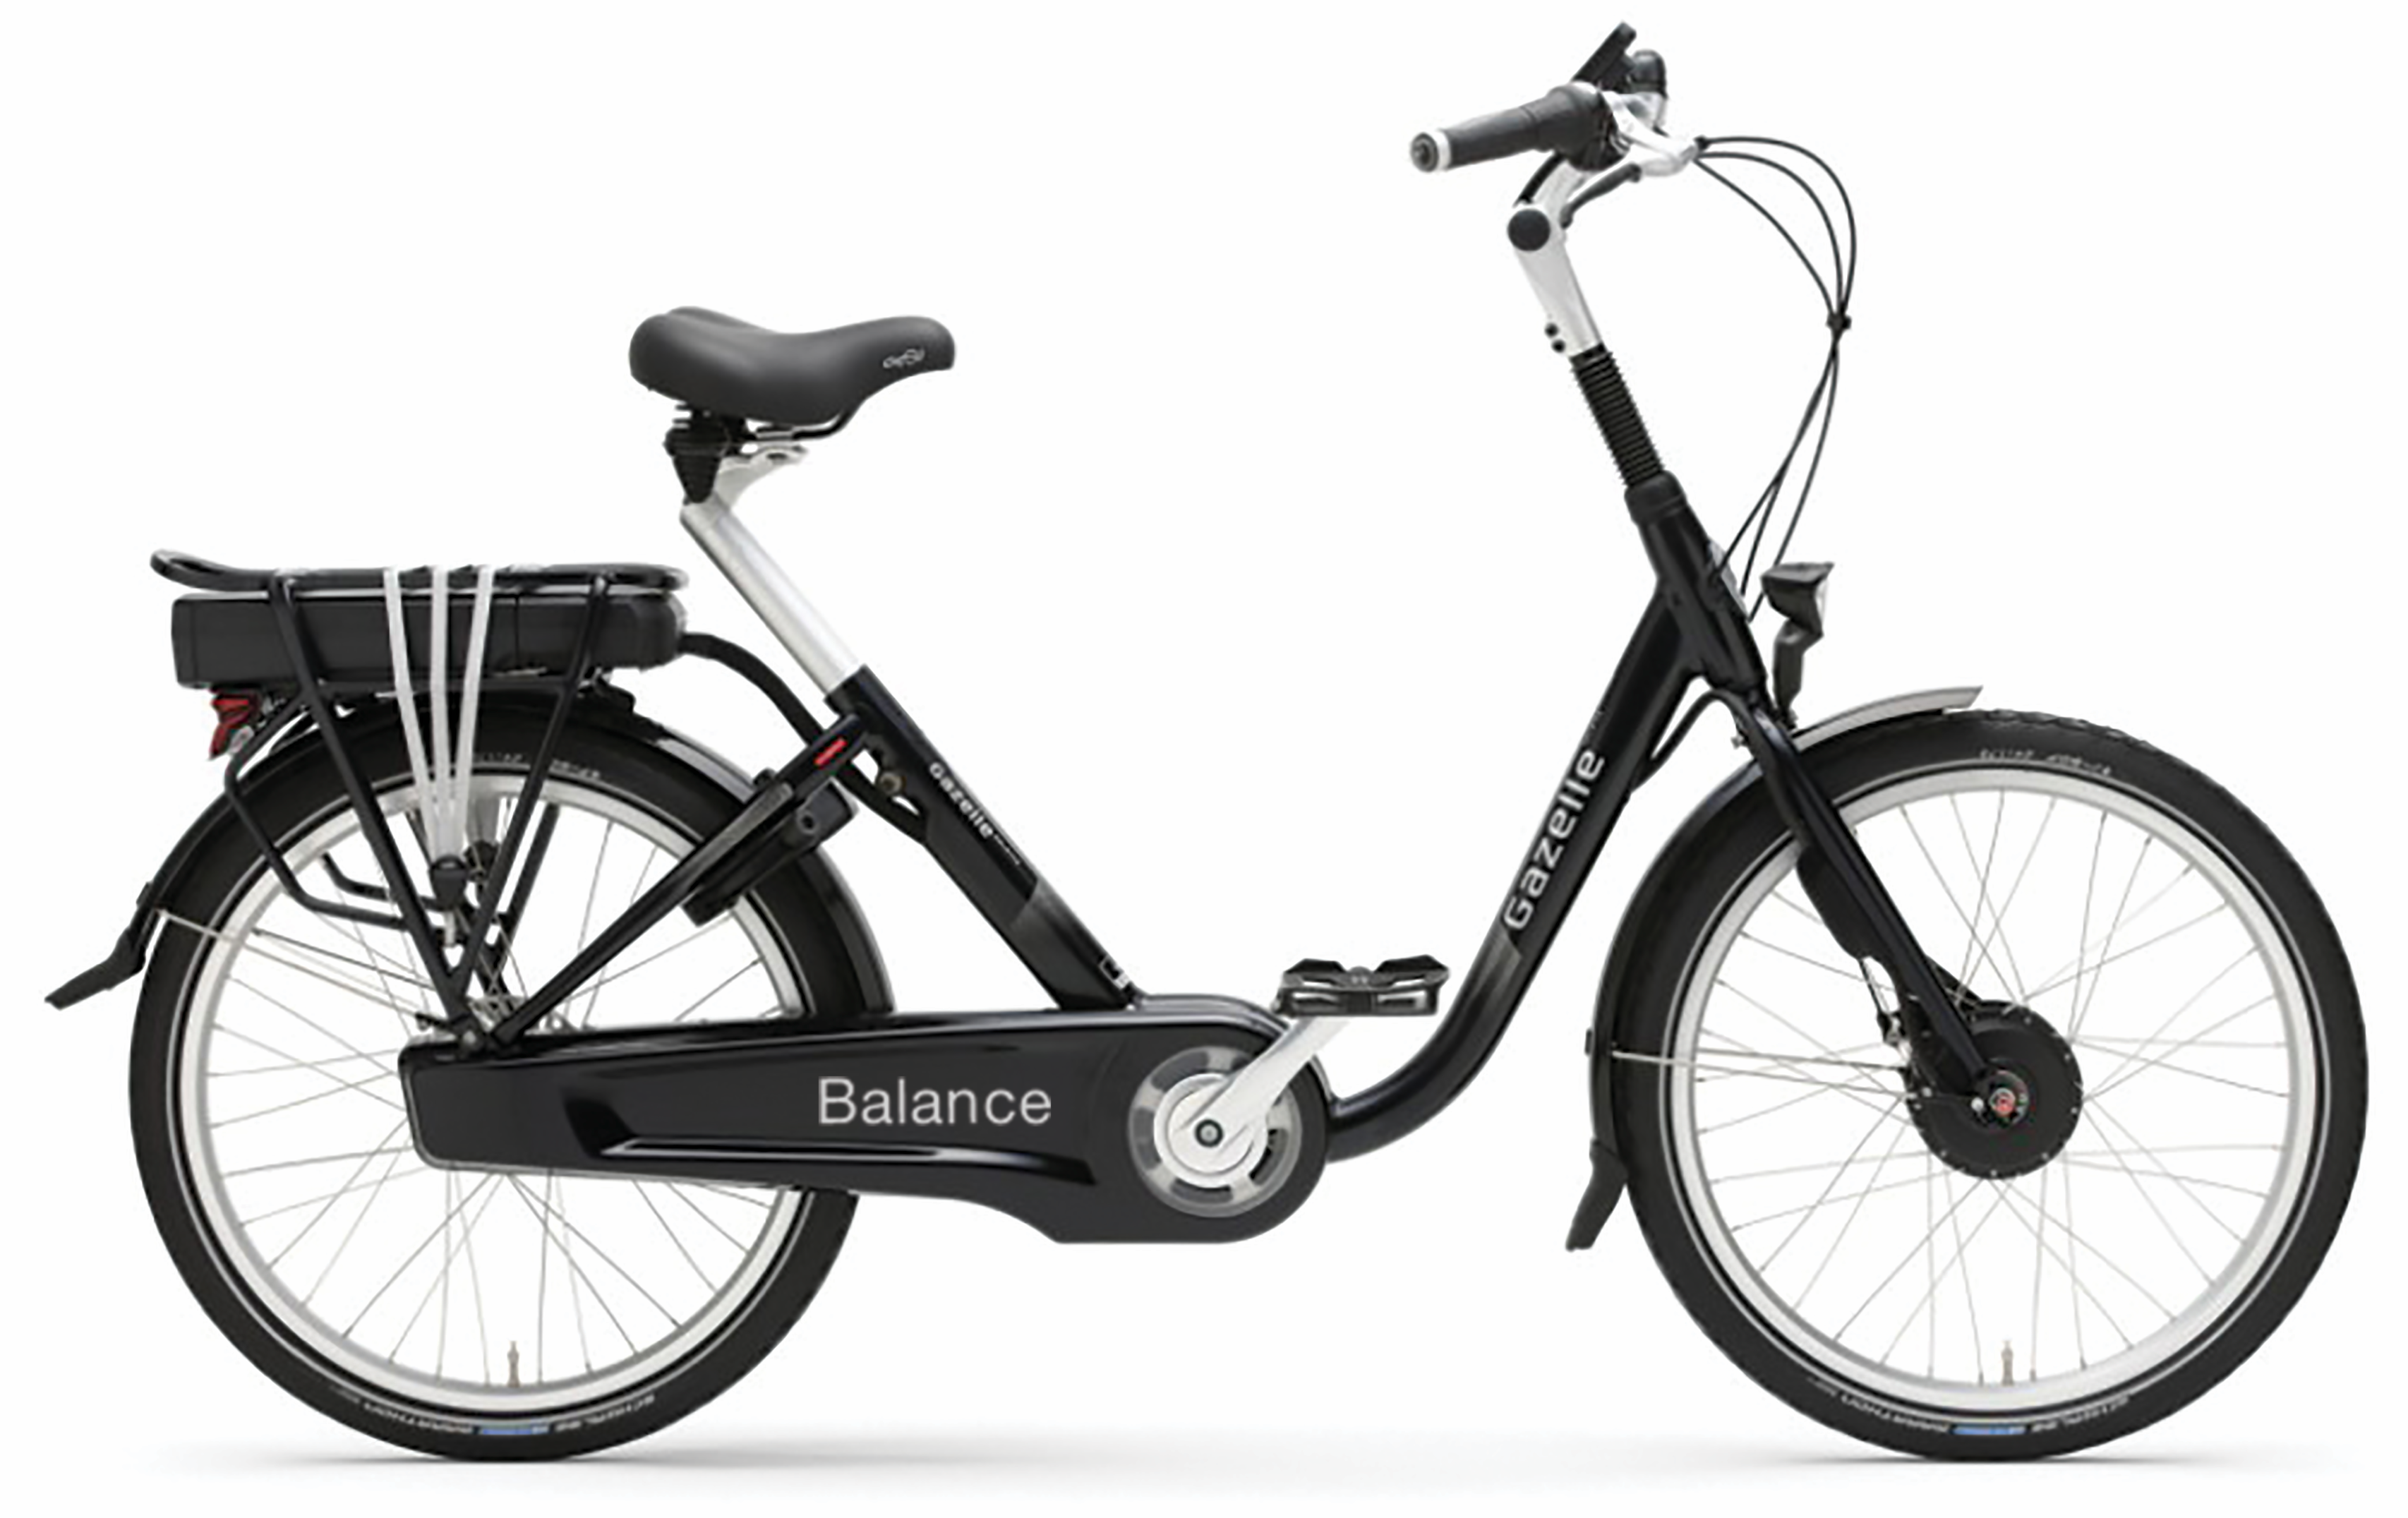 The Balance: a Gazelle bicycle designed by Andries Gaastra.